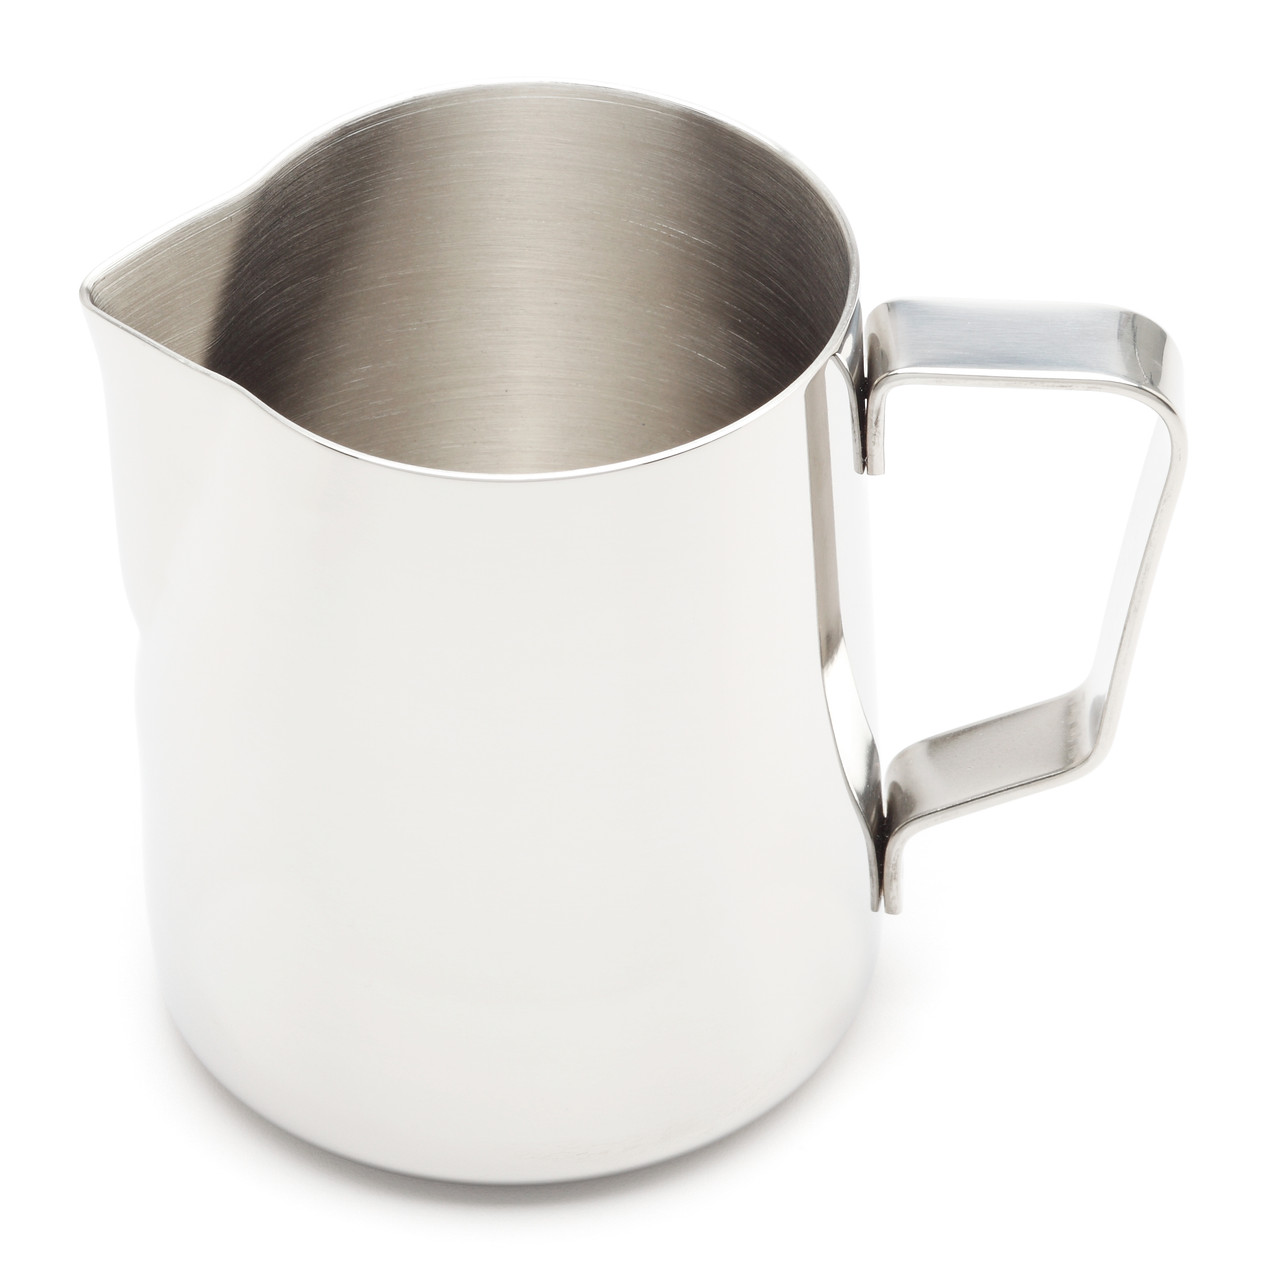 Revolution Classic Stainless Steel Steaming Pitcher, 12oz